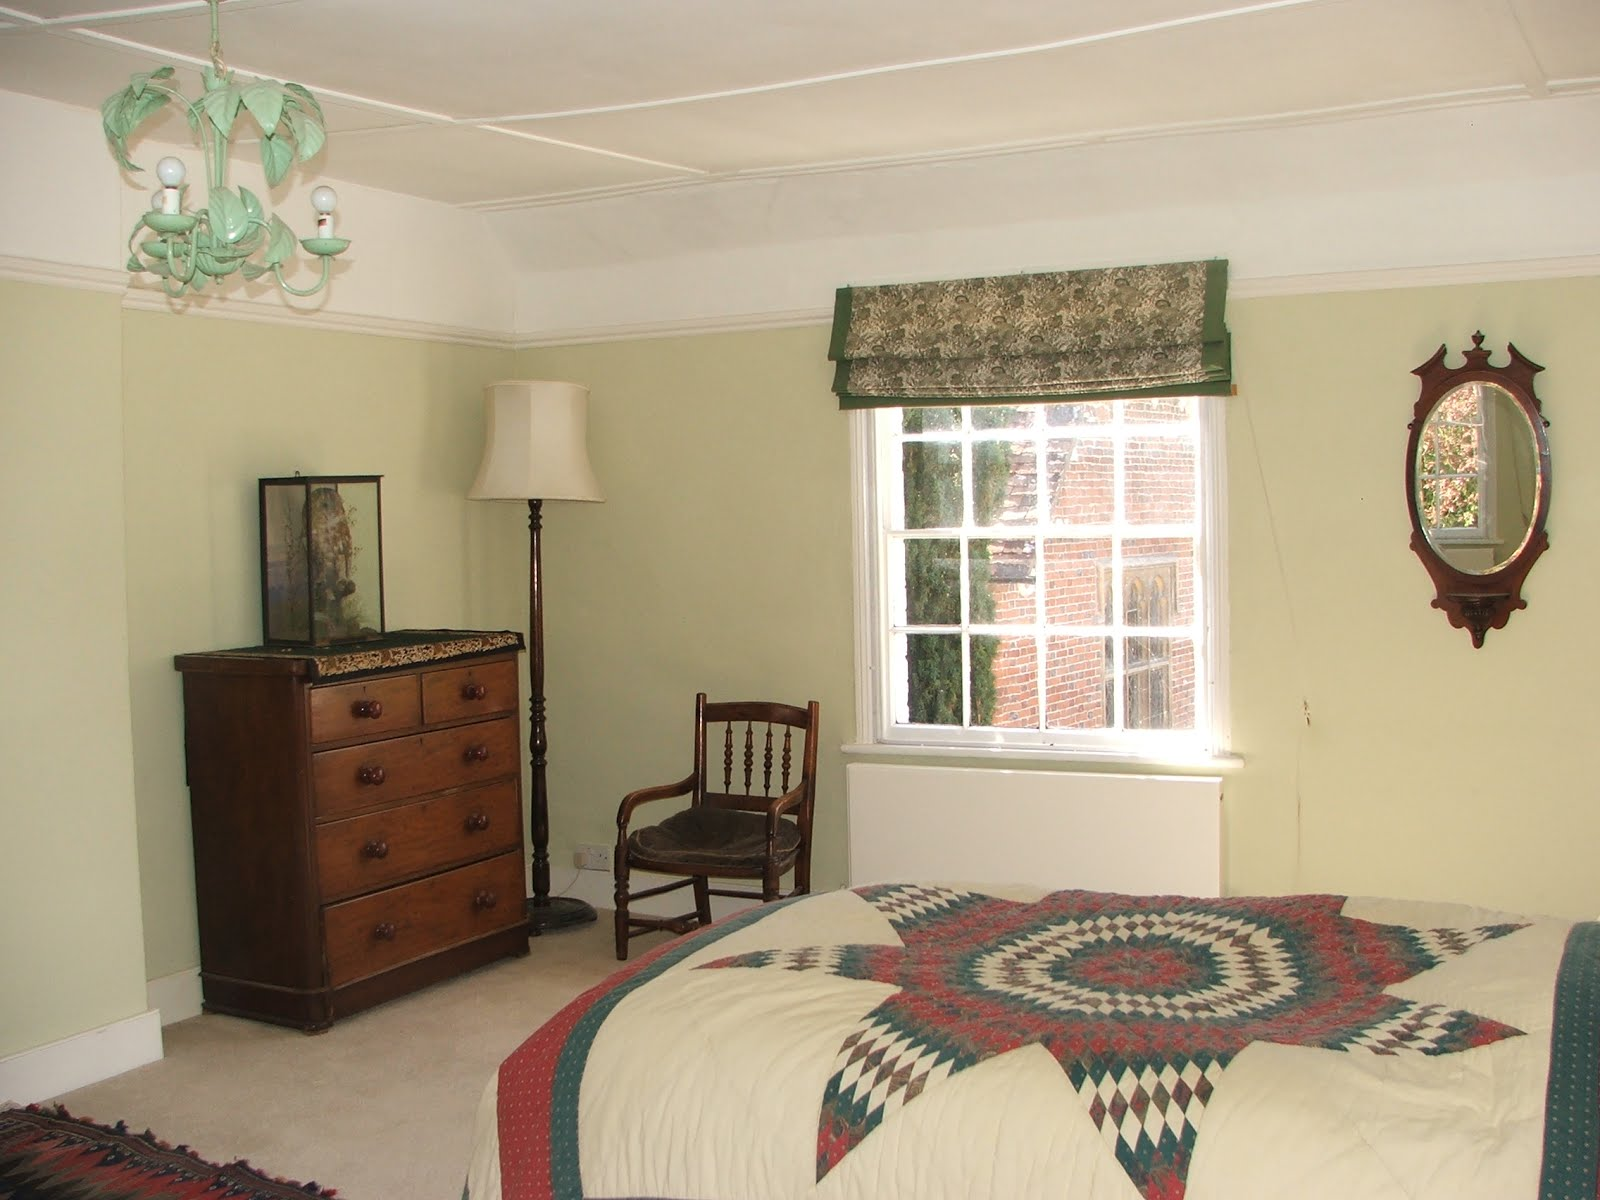 this is the bedroom looking west